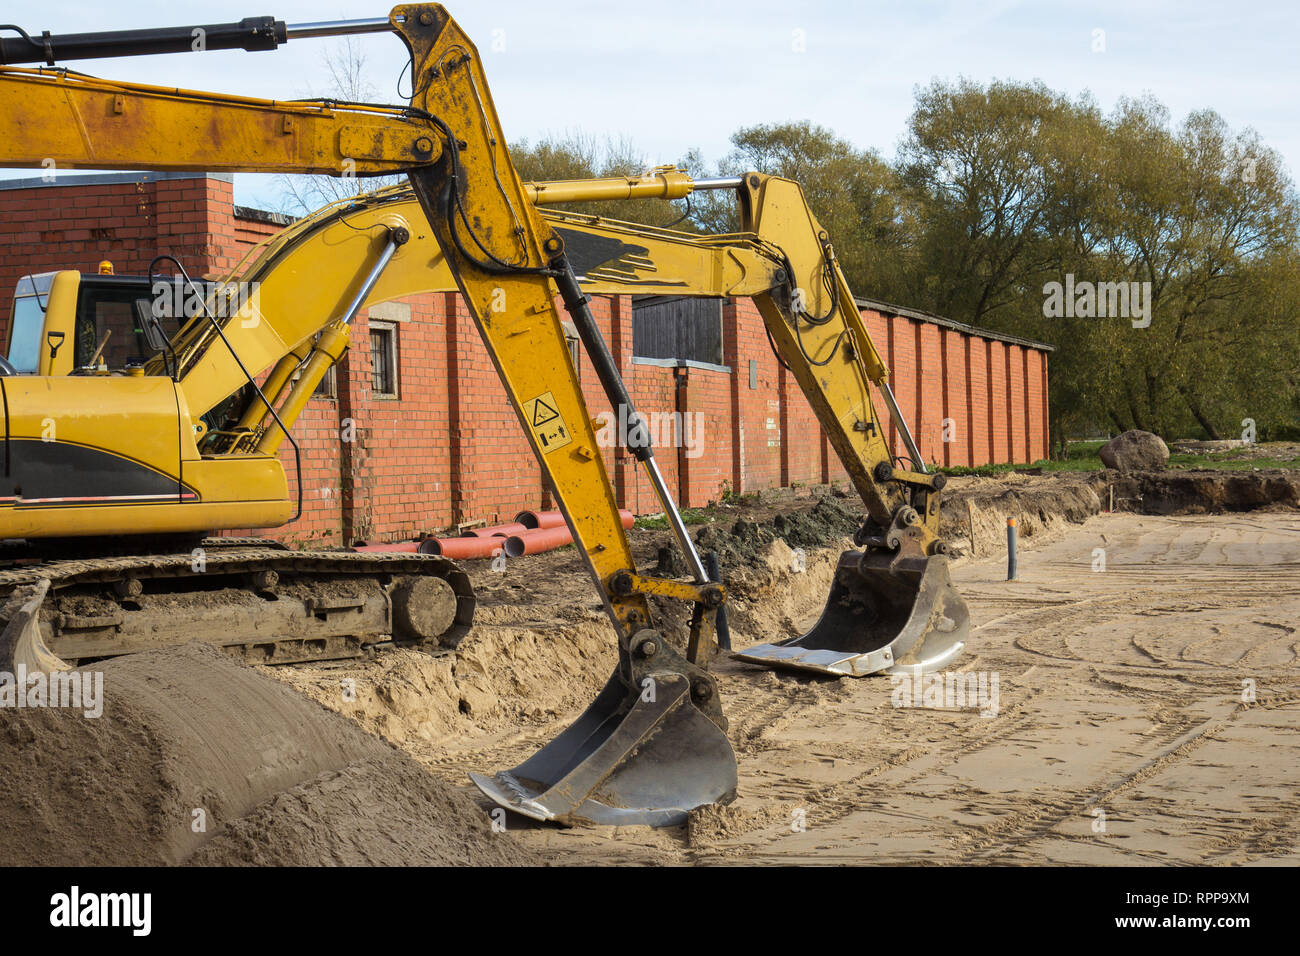 two yellow excavators parked at construction site - Stock Image